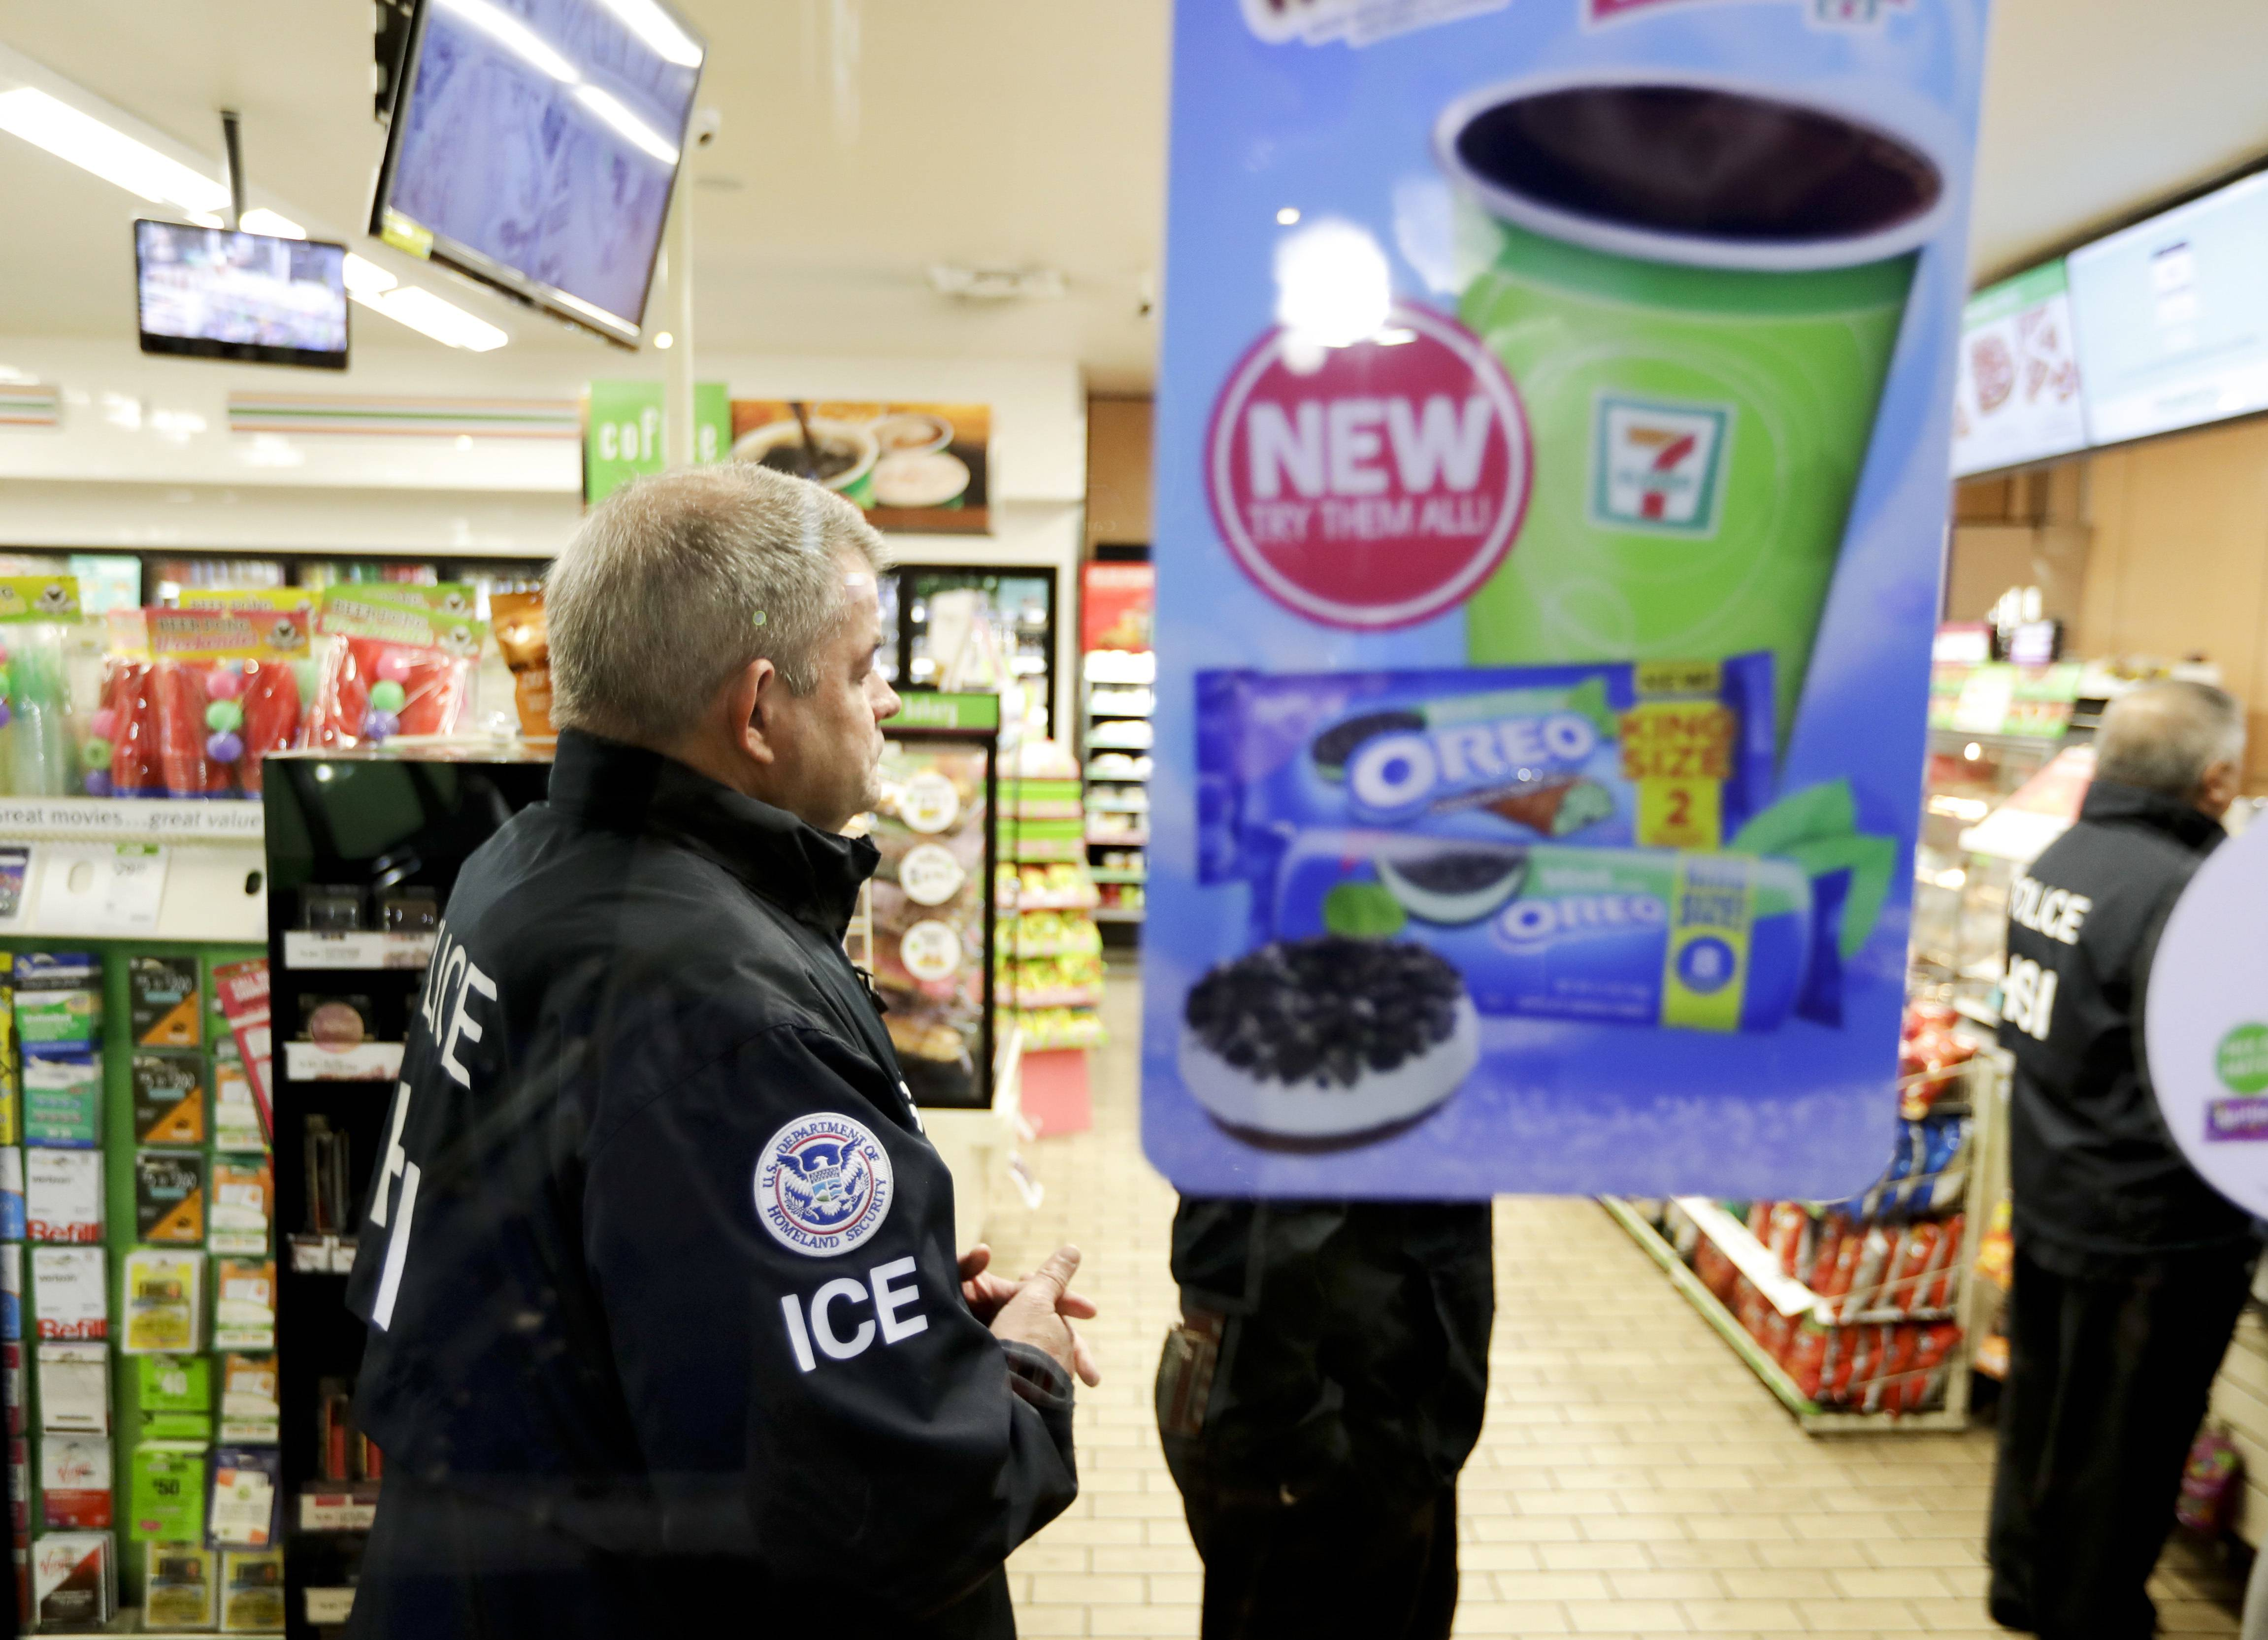 U.S. Immigration and Customs Enforcement agents serve an employment audit notice at a 7-Eleven convenience store Wednesday in Los Angeles. Agents said they targeted about 100 7-Eleven stores nationwide Wednesday to open employment audits and interview workers.